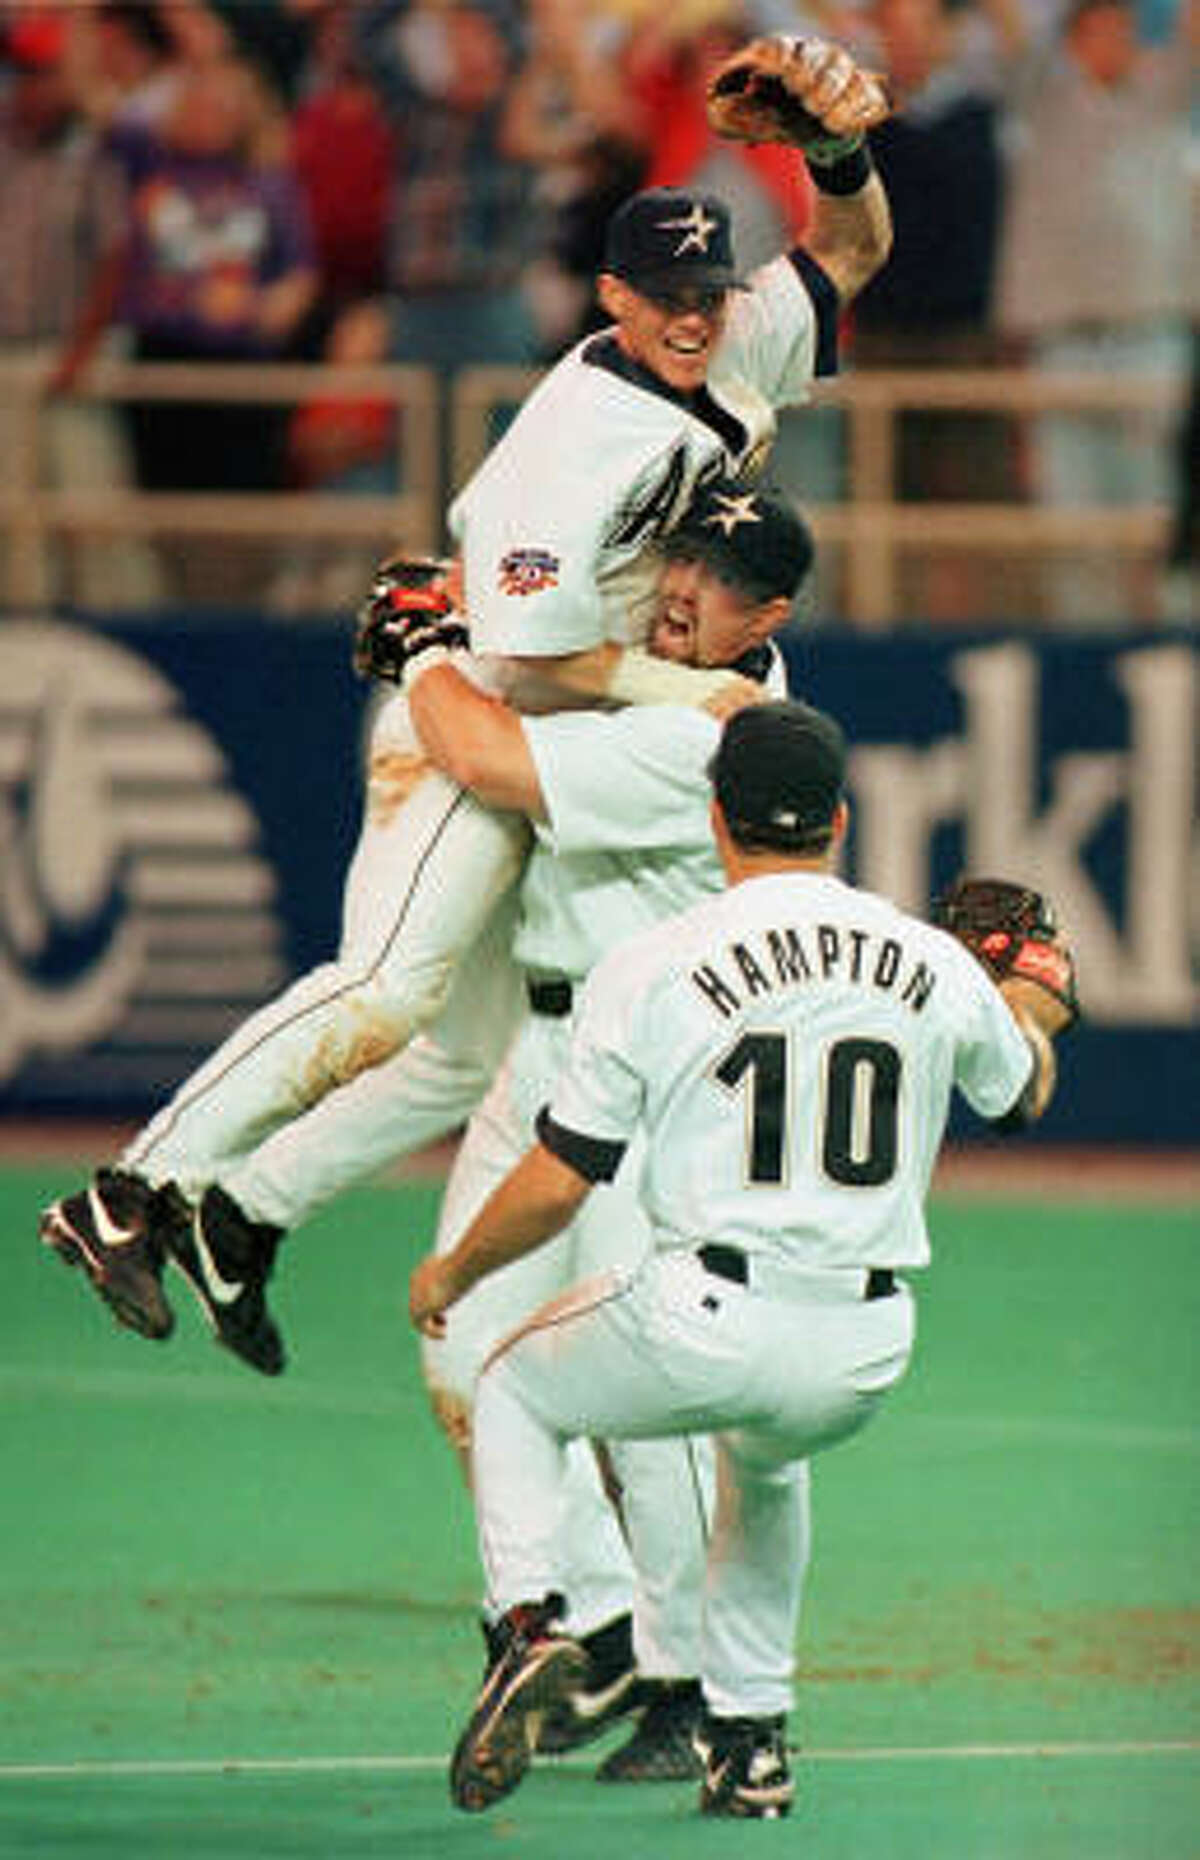 Jeff Bagwell hoists Craig Biggio as Mike Hampton joins the celebration after the Astros clinched their first division title in 11 years